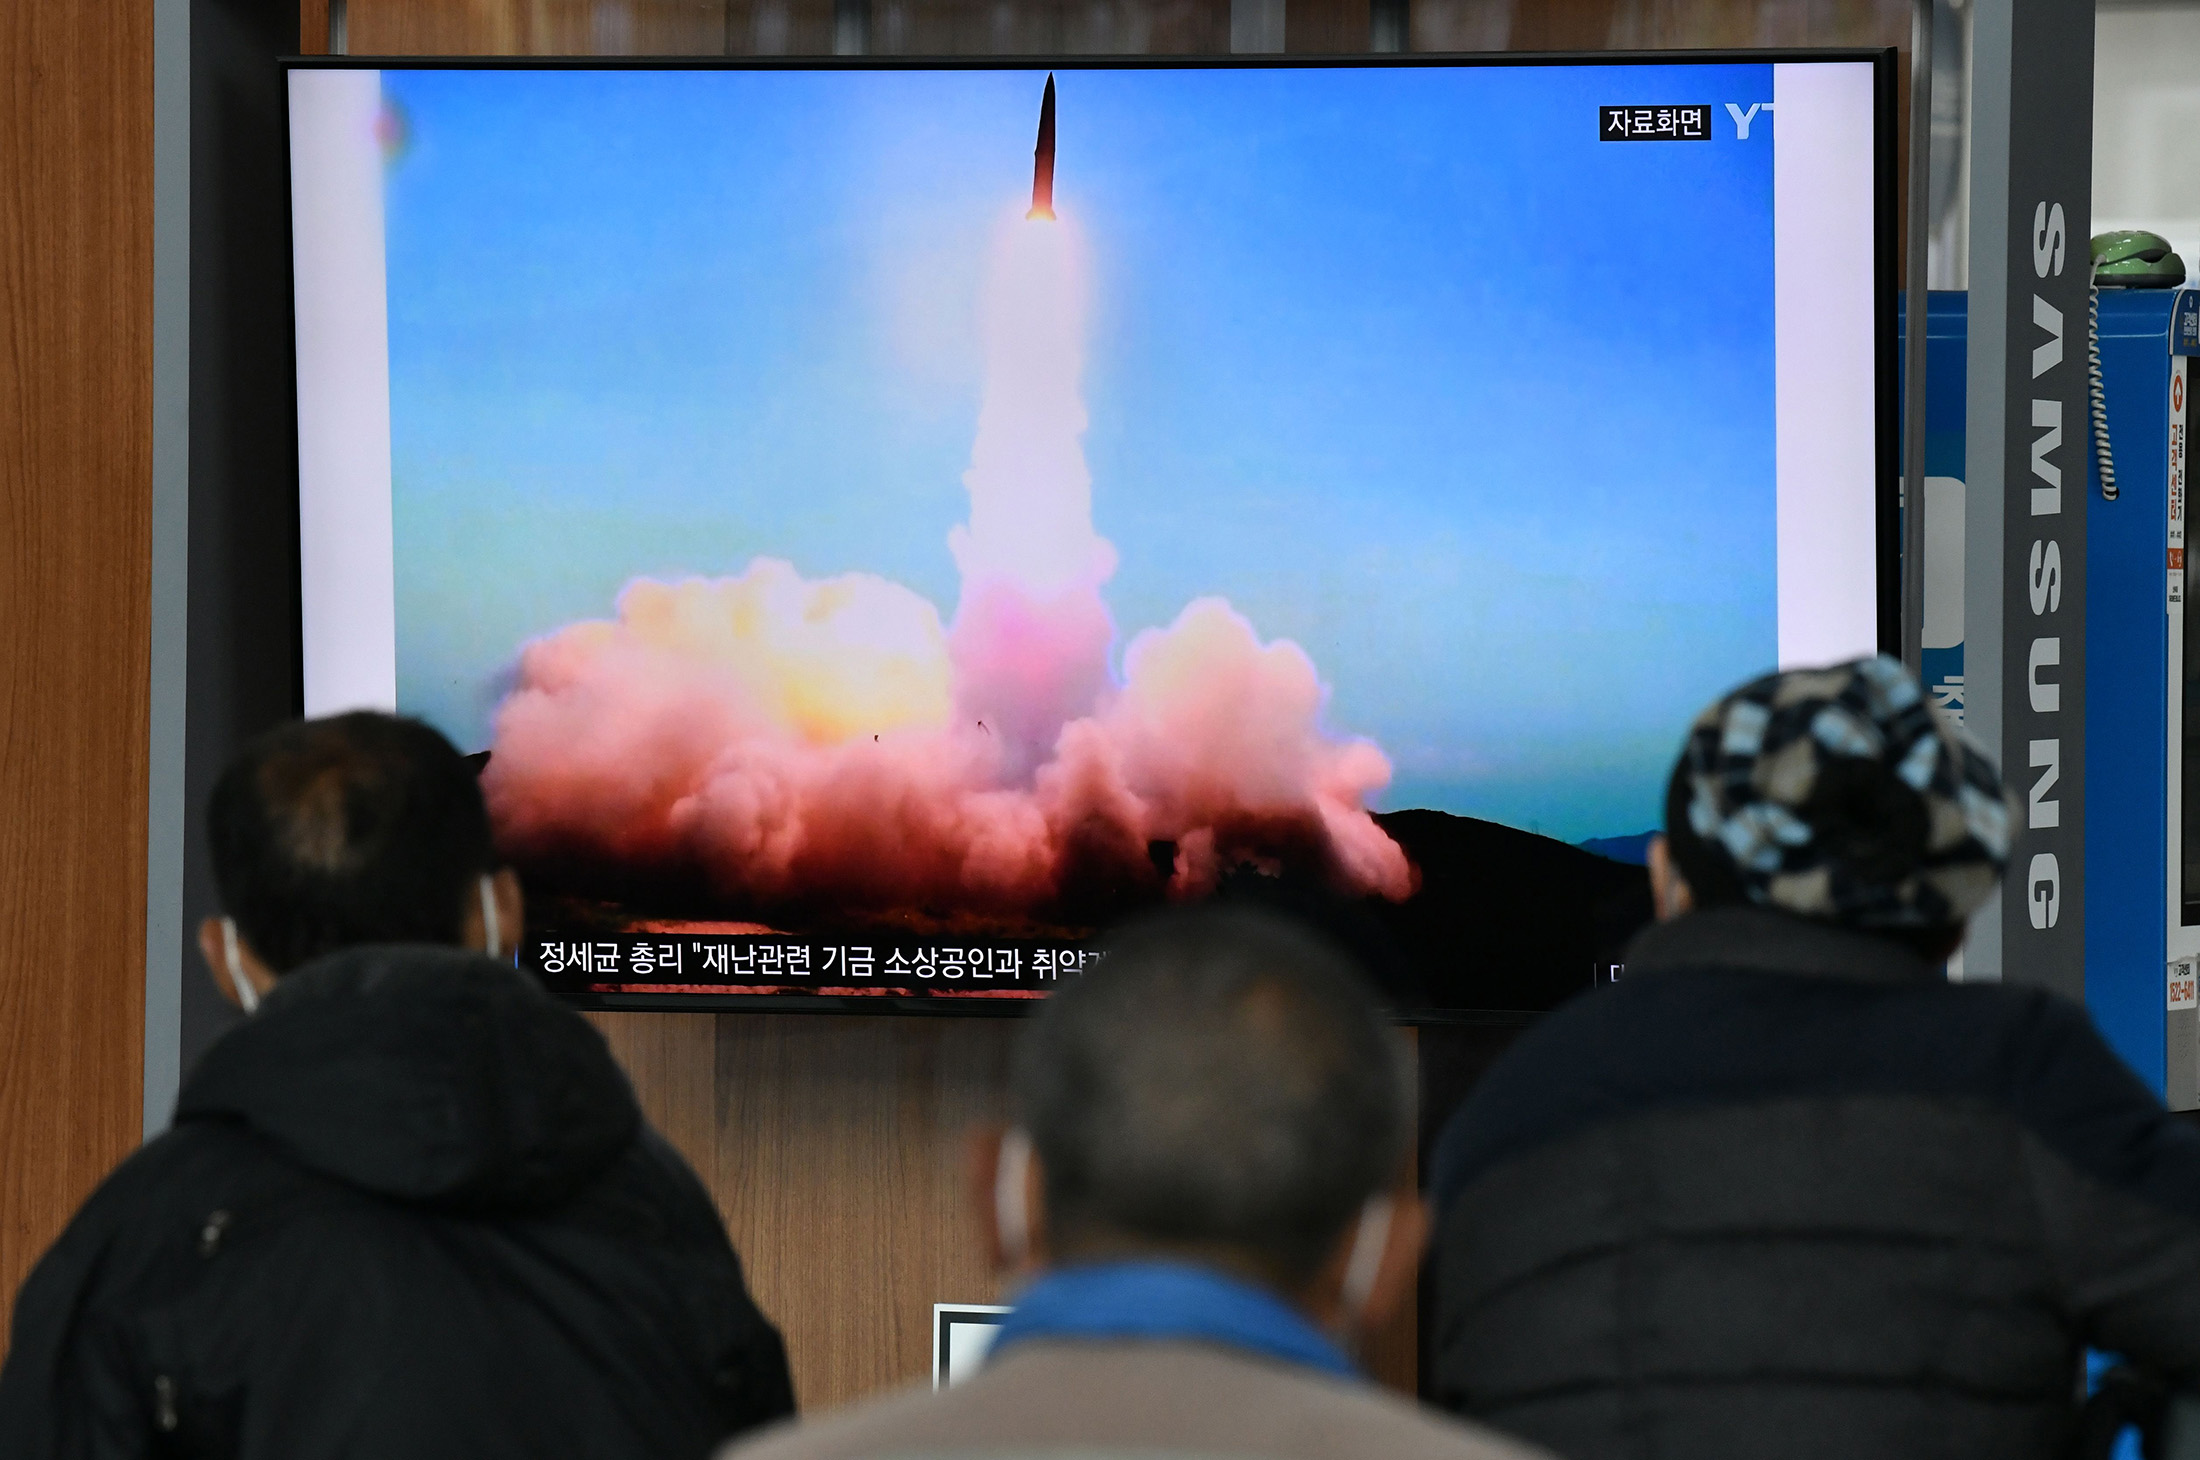 North Korea Fires Missile Into East Sea